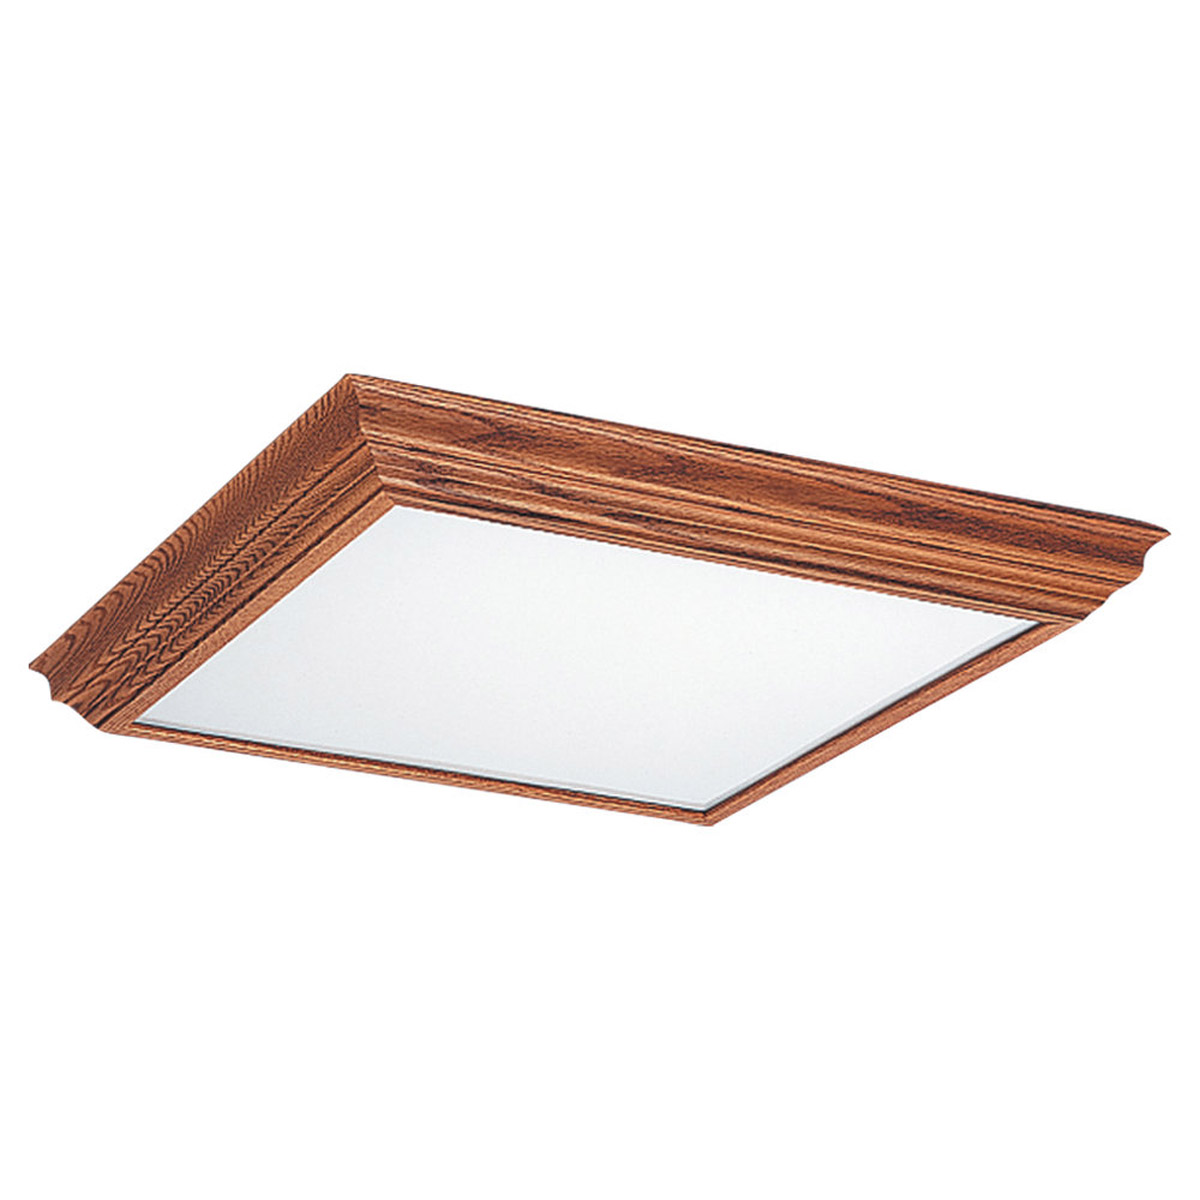 Sea Gull Lighting Signature 2 Light Fluorescent Trim Only in Oak 5977-43